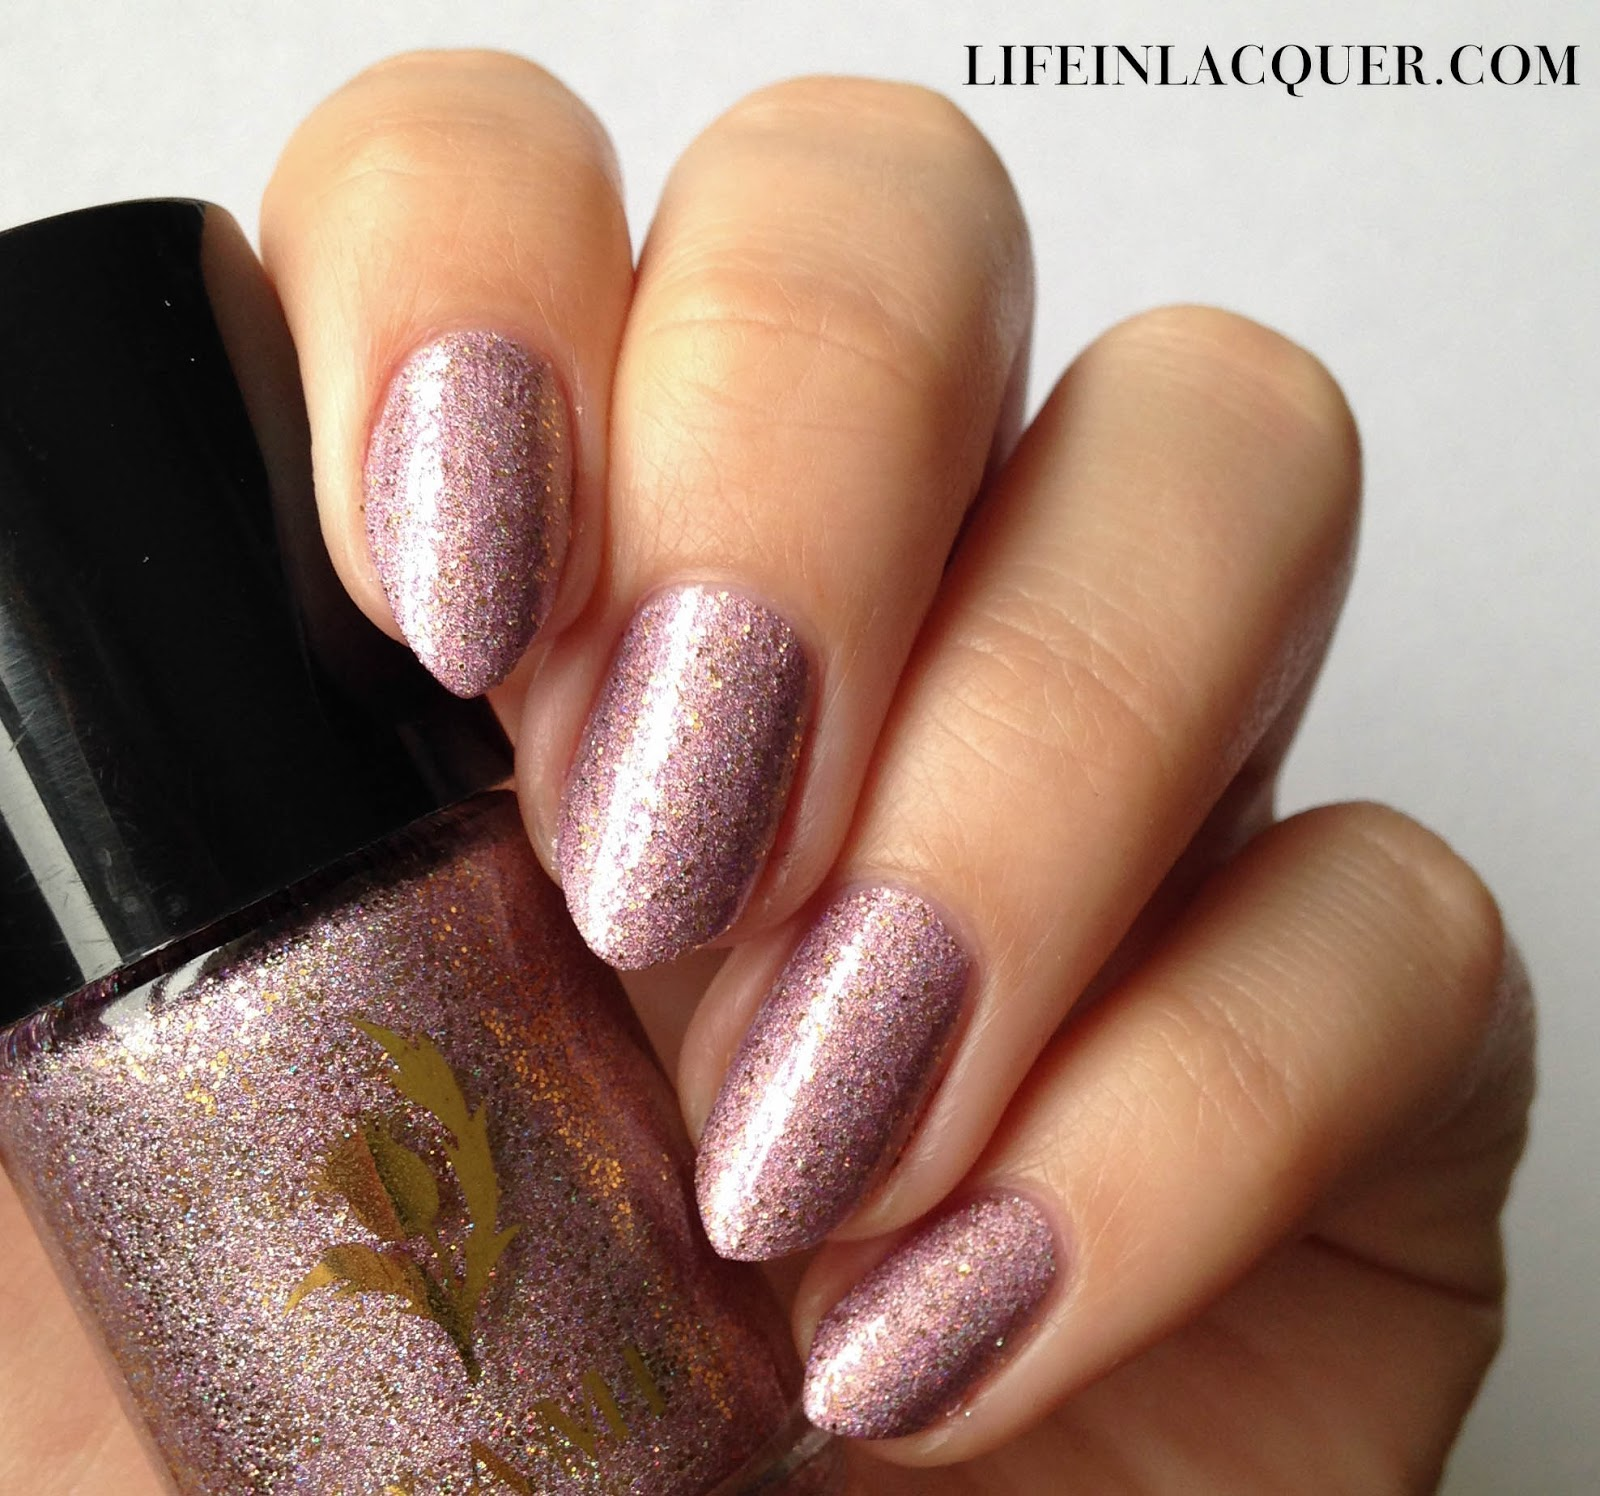 Swatch of Gleneagles Glamour by Tami Beauty